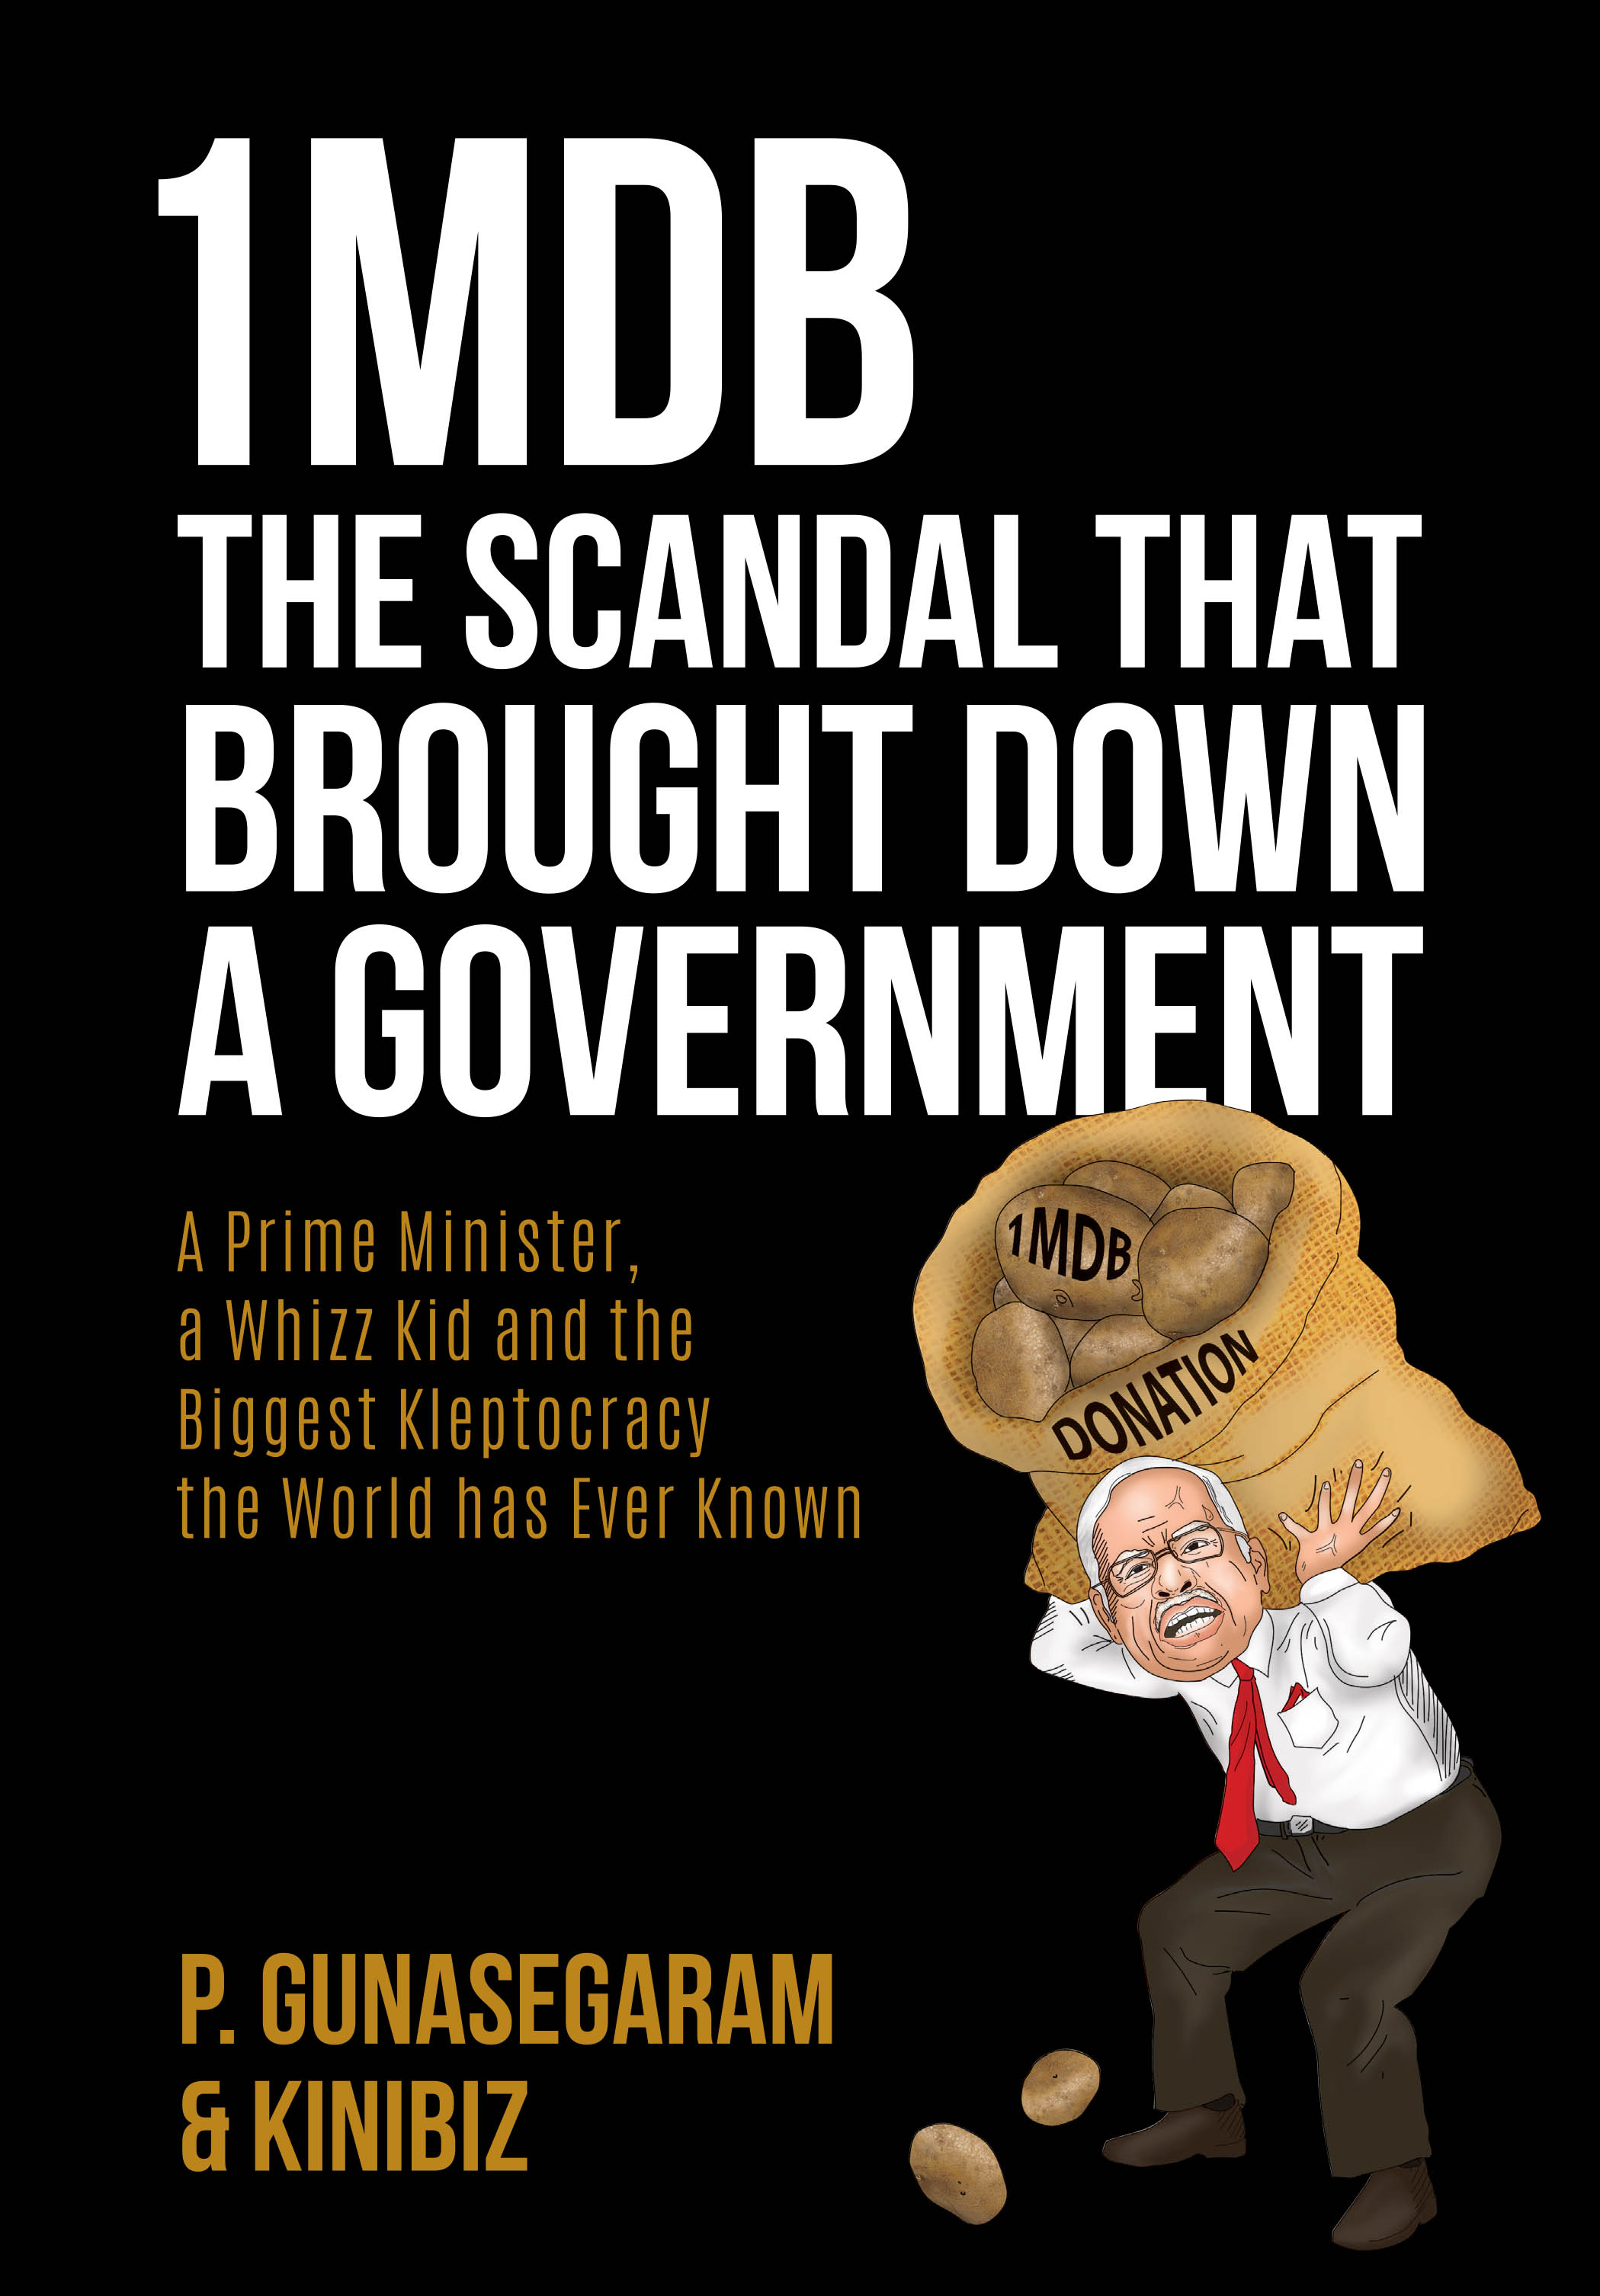 1MDB The Scandal That Brought Down A Government